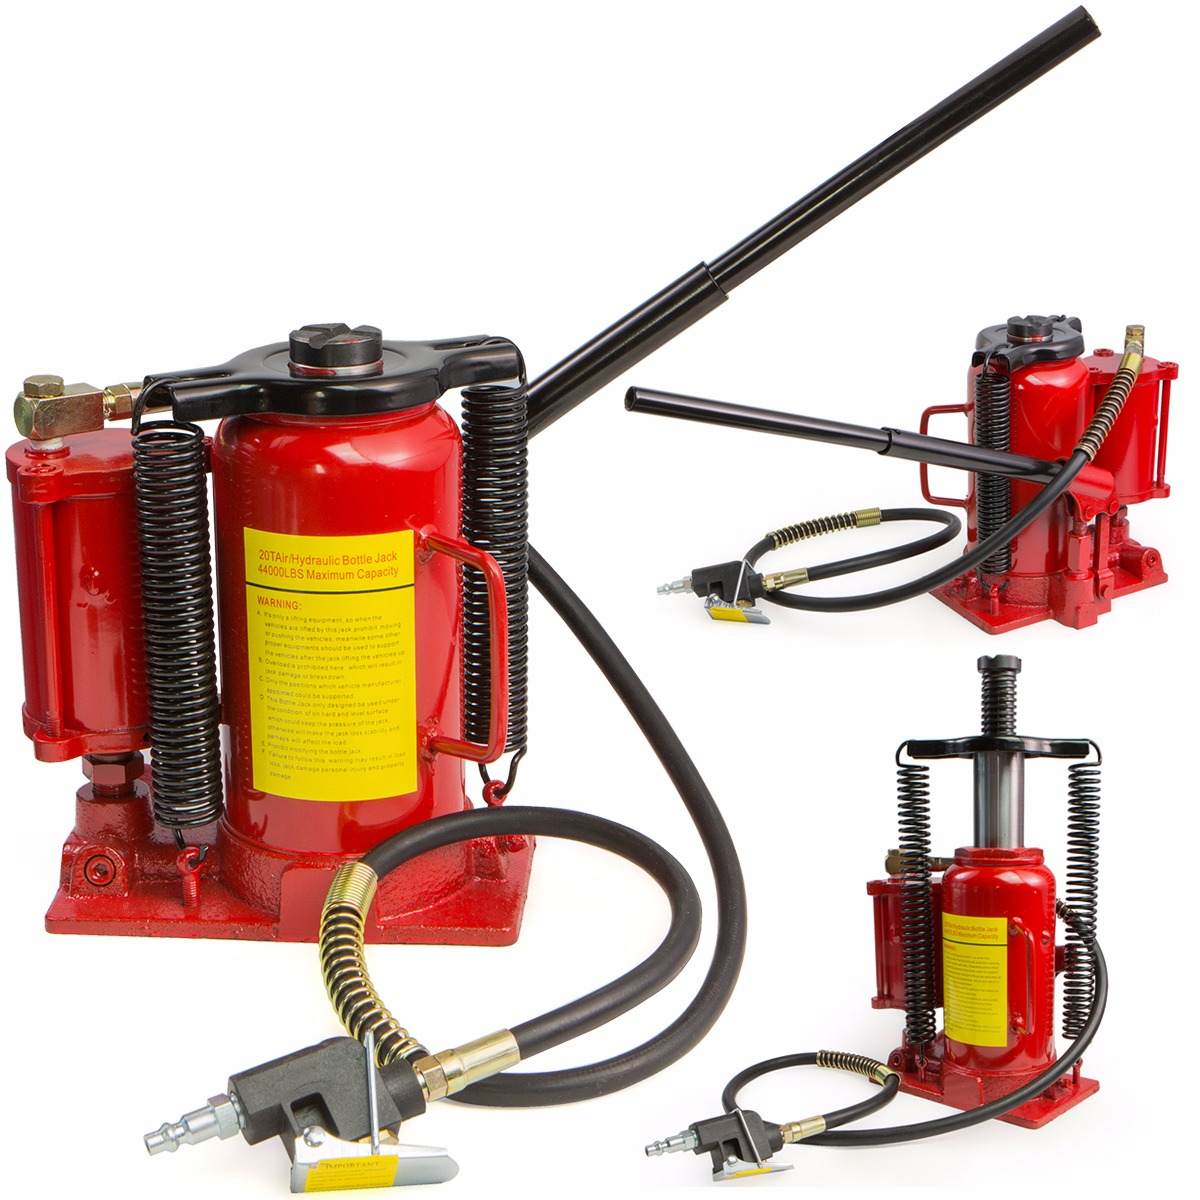 20TON 40000LB Automotive Heavy Duty Air Hydraulic Bottle Jack Lift Repair Tool